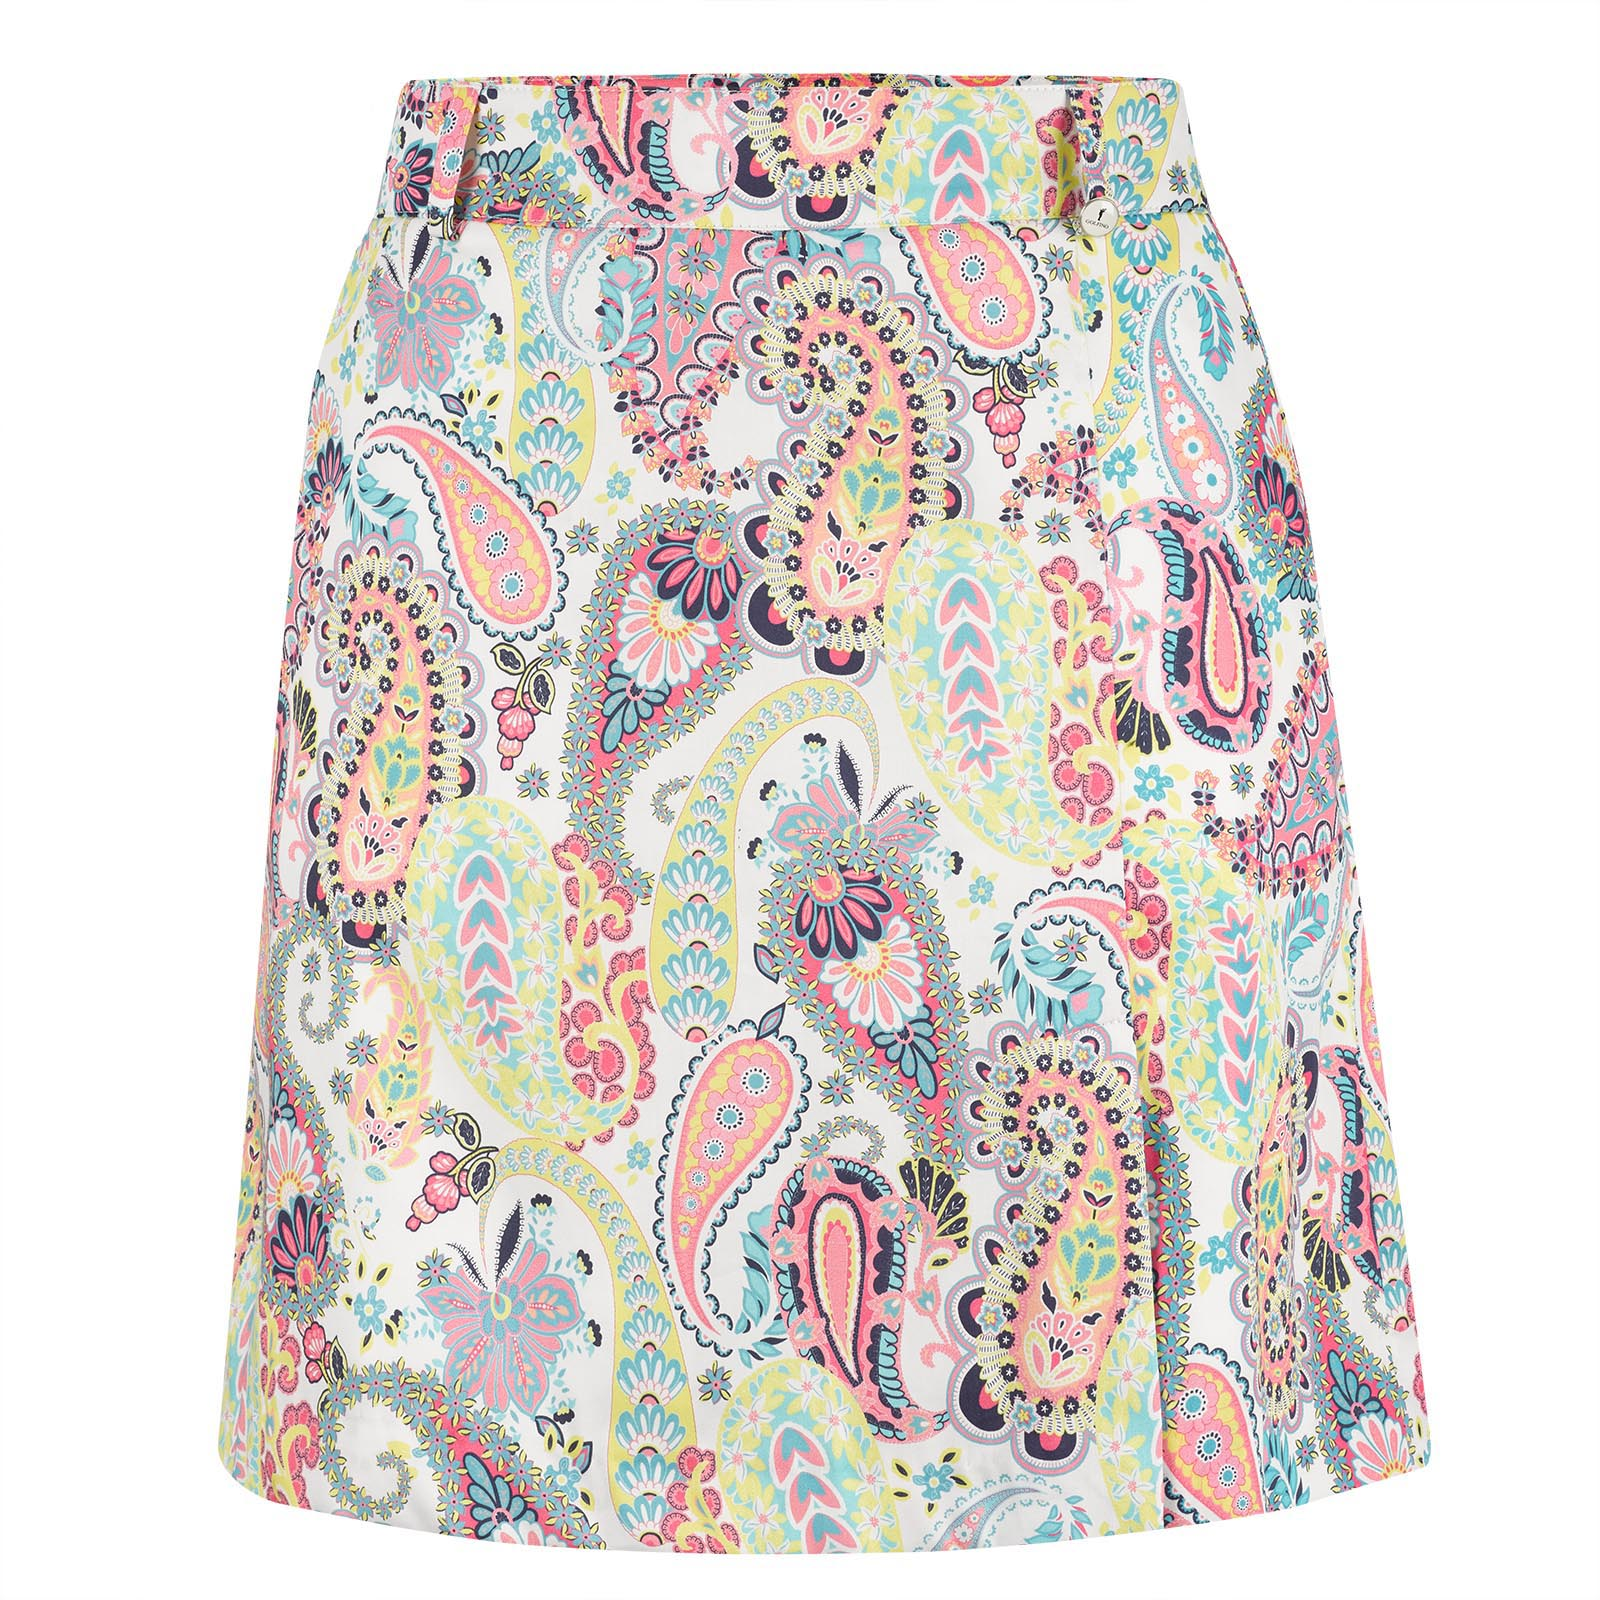 Ladies' medium length golf skort with paisley pattern